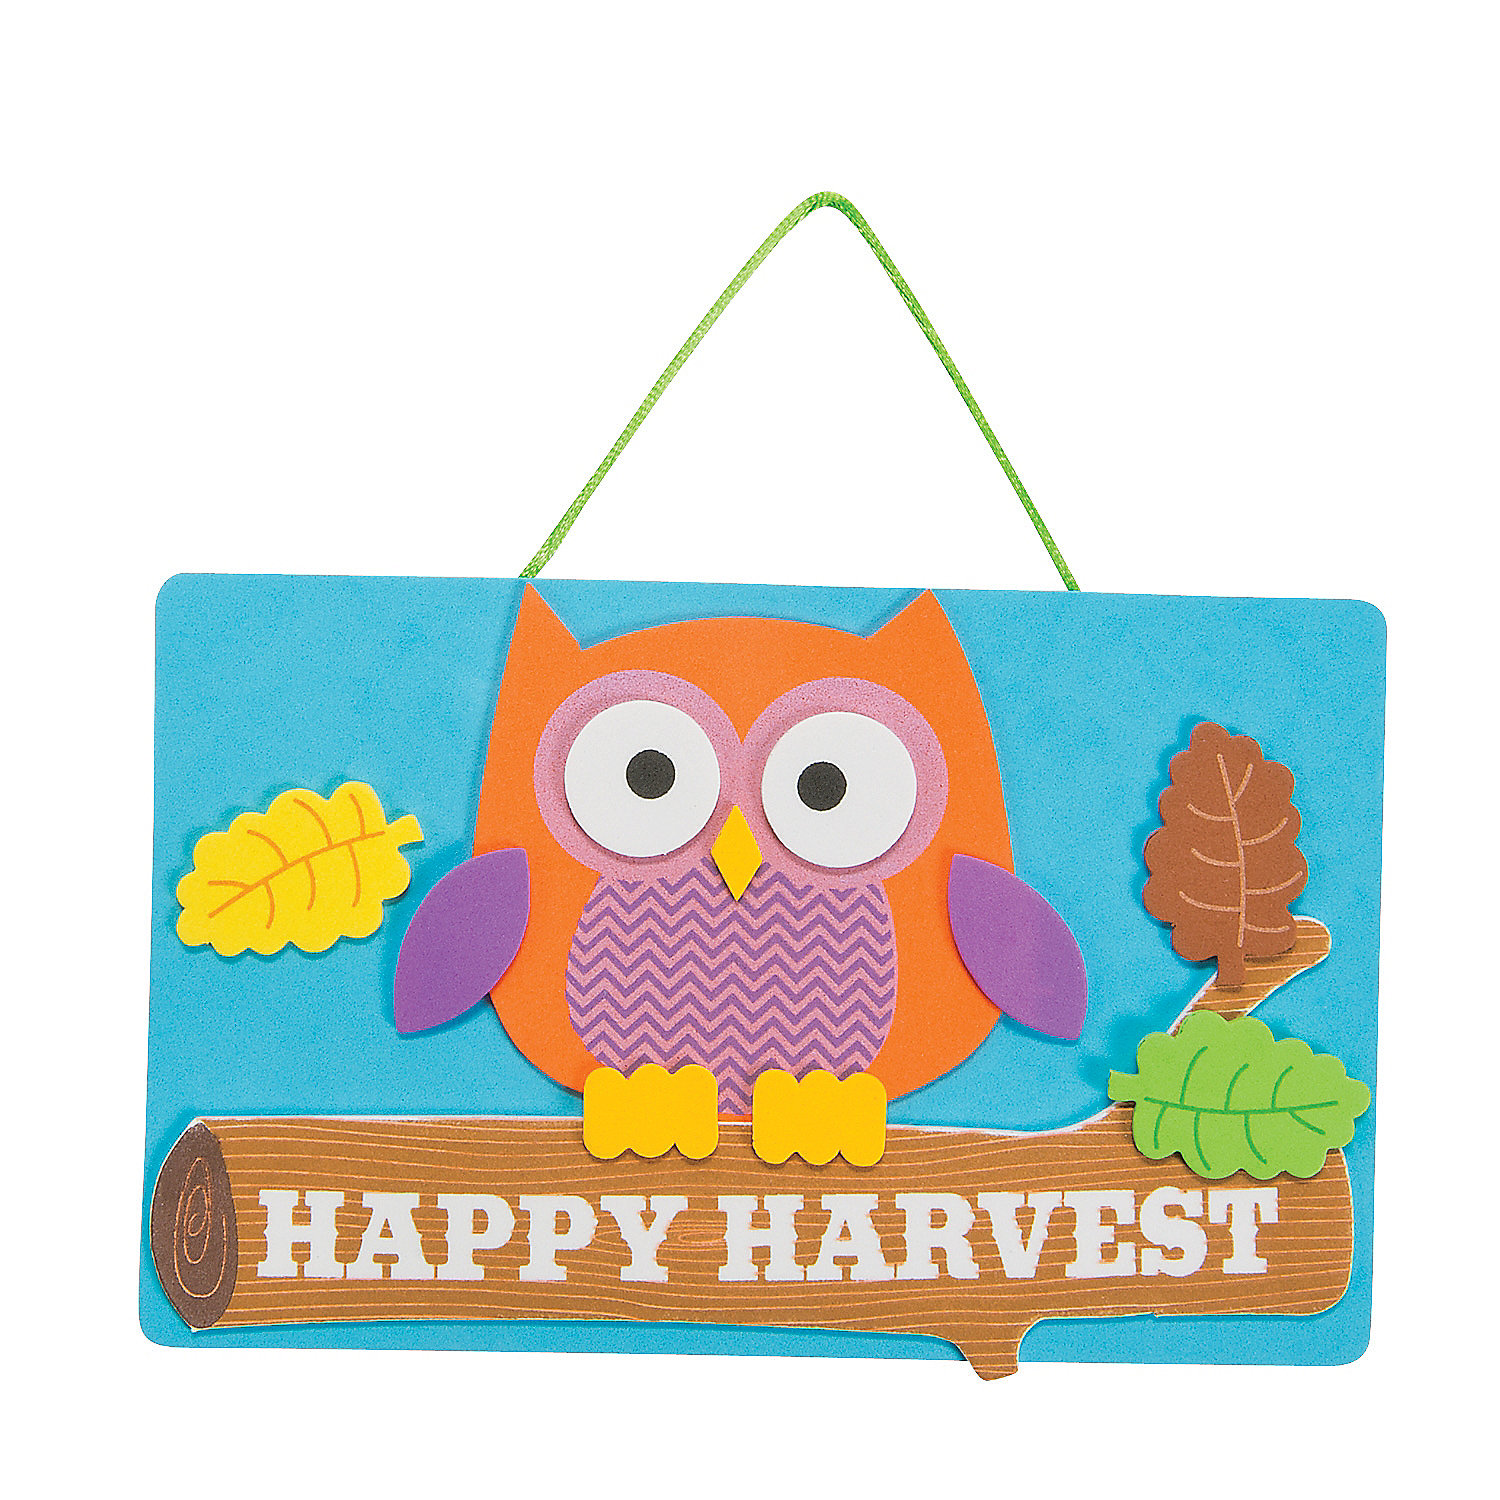 Harvest owl sign craft kit sign crafts crafts for kids for Harvest crafts for kids